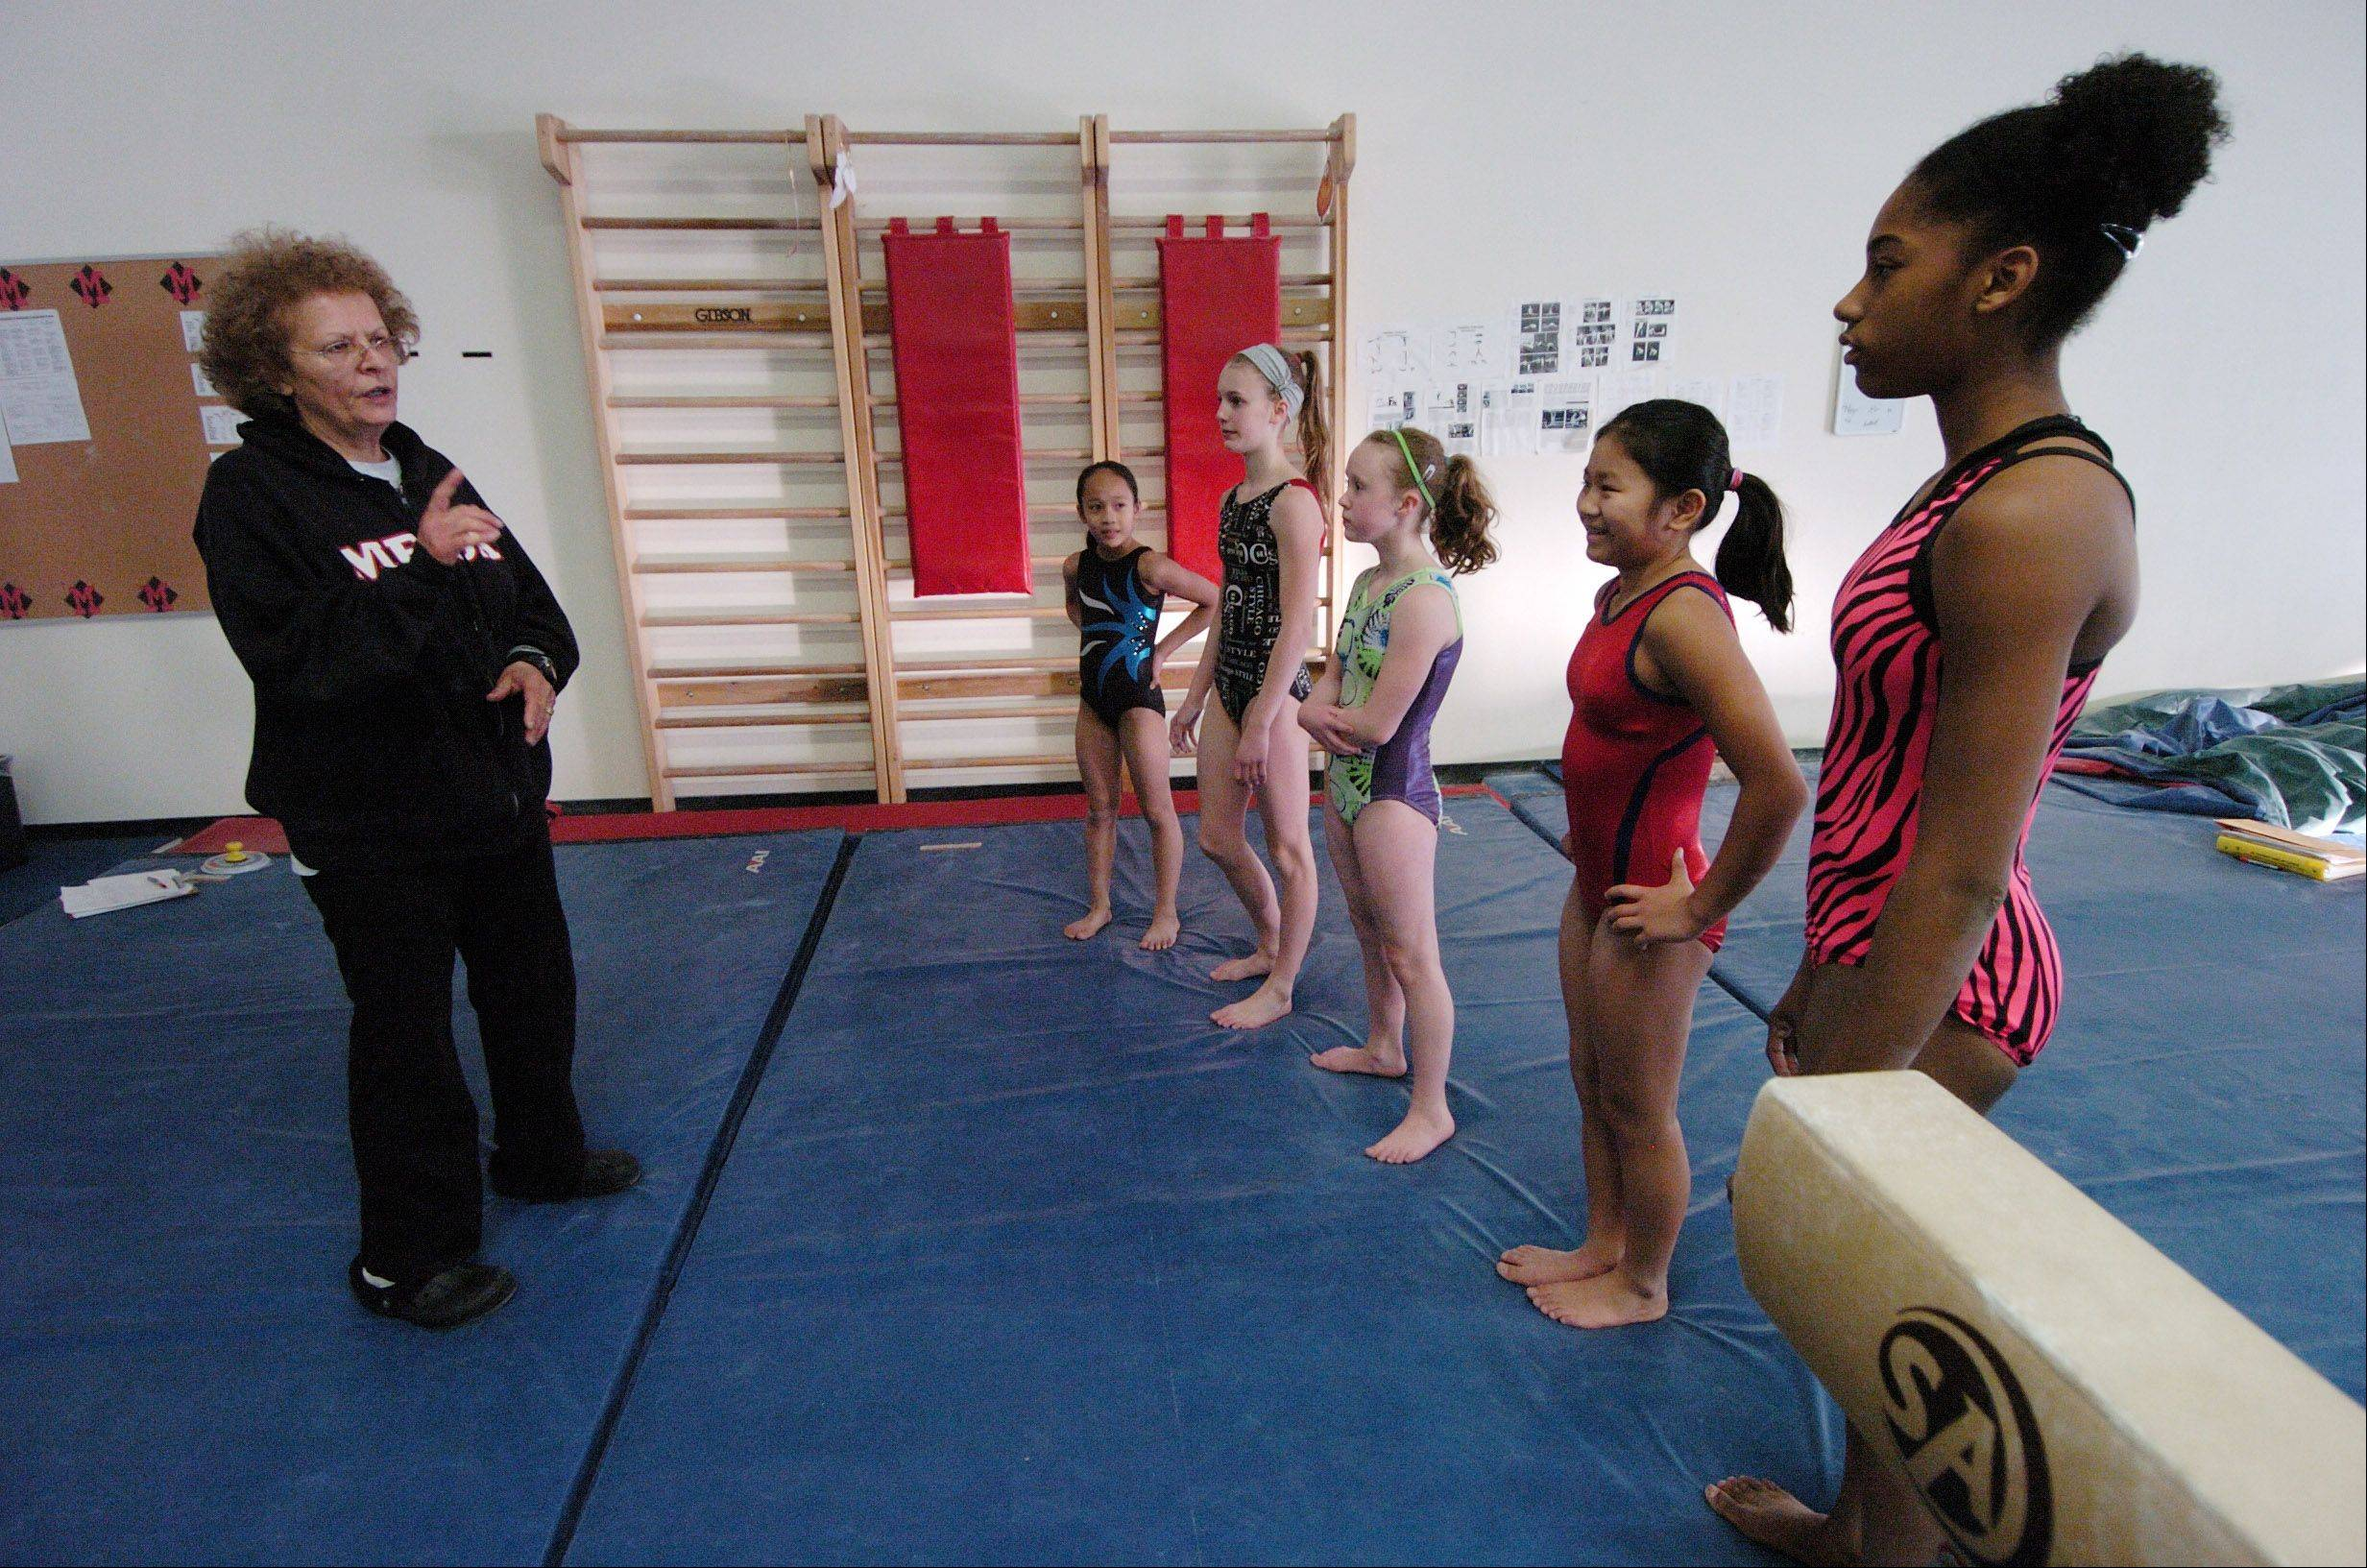 JOE LEWNARD/jlewnard@dailyherald.comGymnastics coach Ileana Albu works with pupils during a session at Midwest Elite Gymnastics Academy in South Barrington. The academy will be moving to Elgin in January.